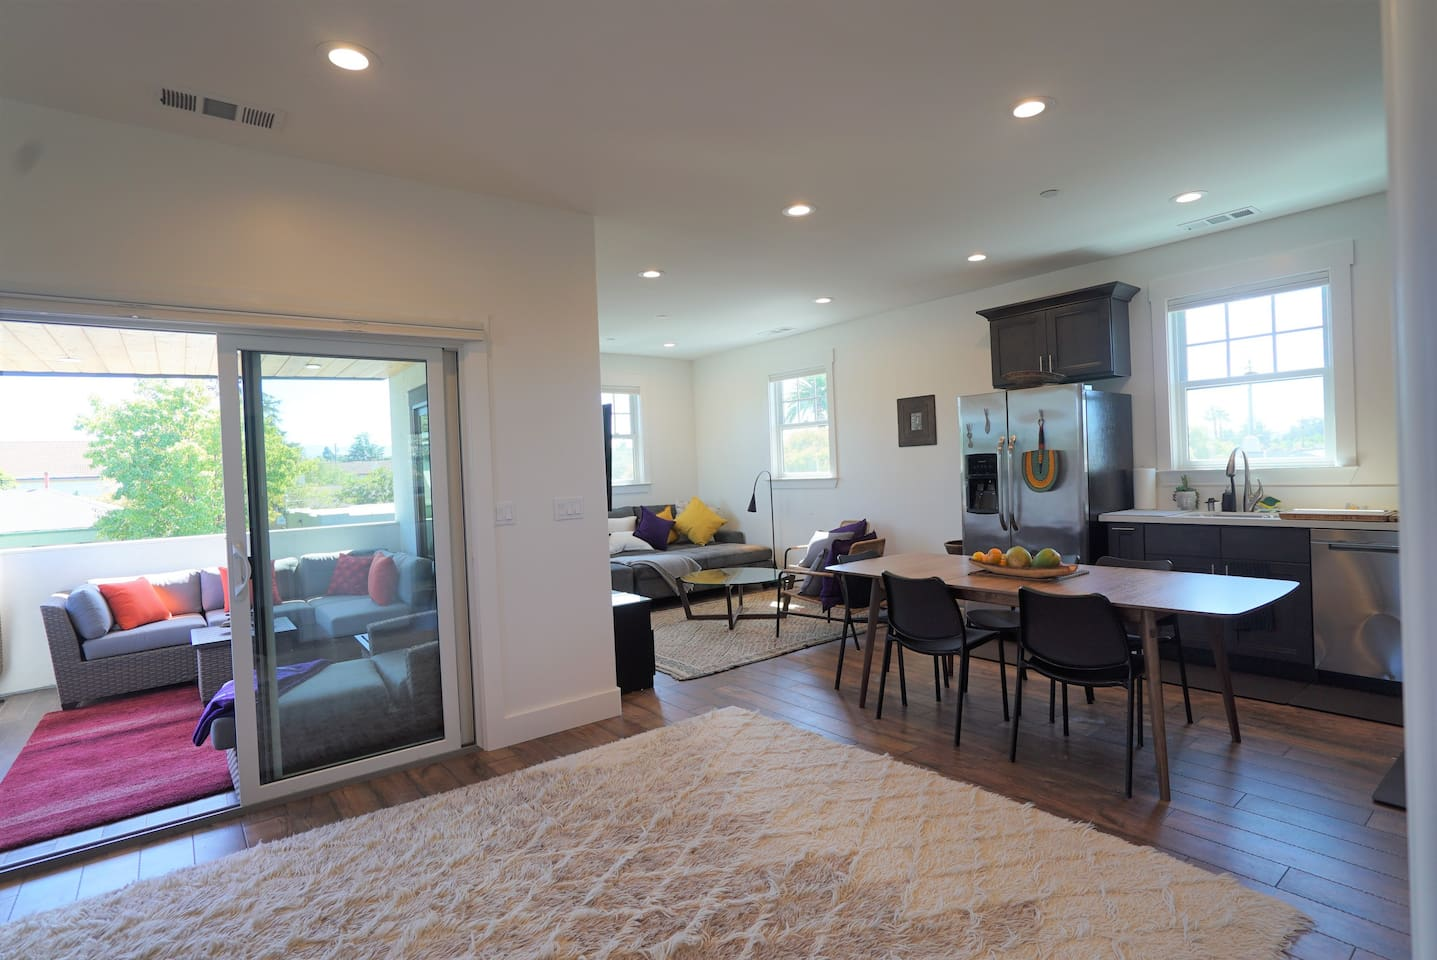 Work and Yoga downtown, office space, yoga space, outdoor views and relaxation with all the modern amenities in this newly built and professionally designed apartment.